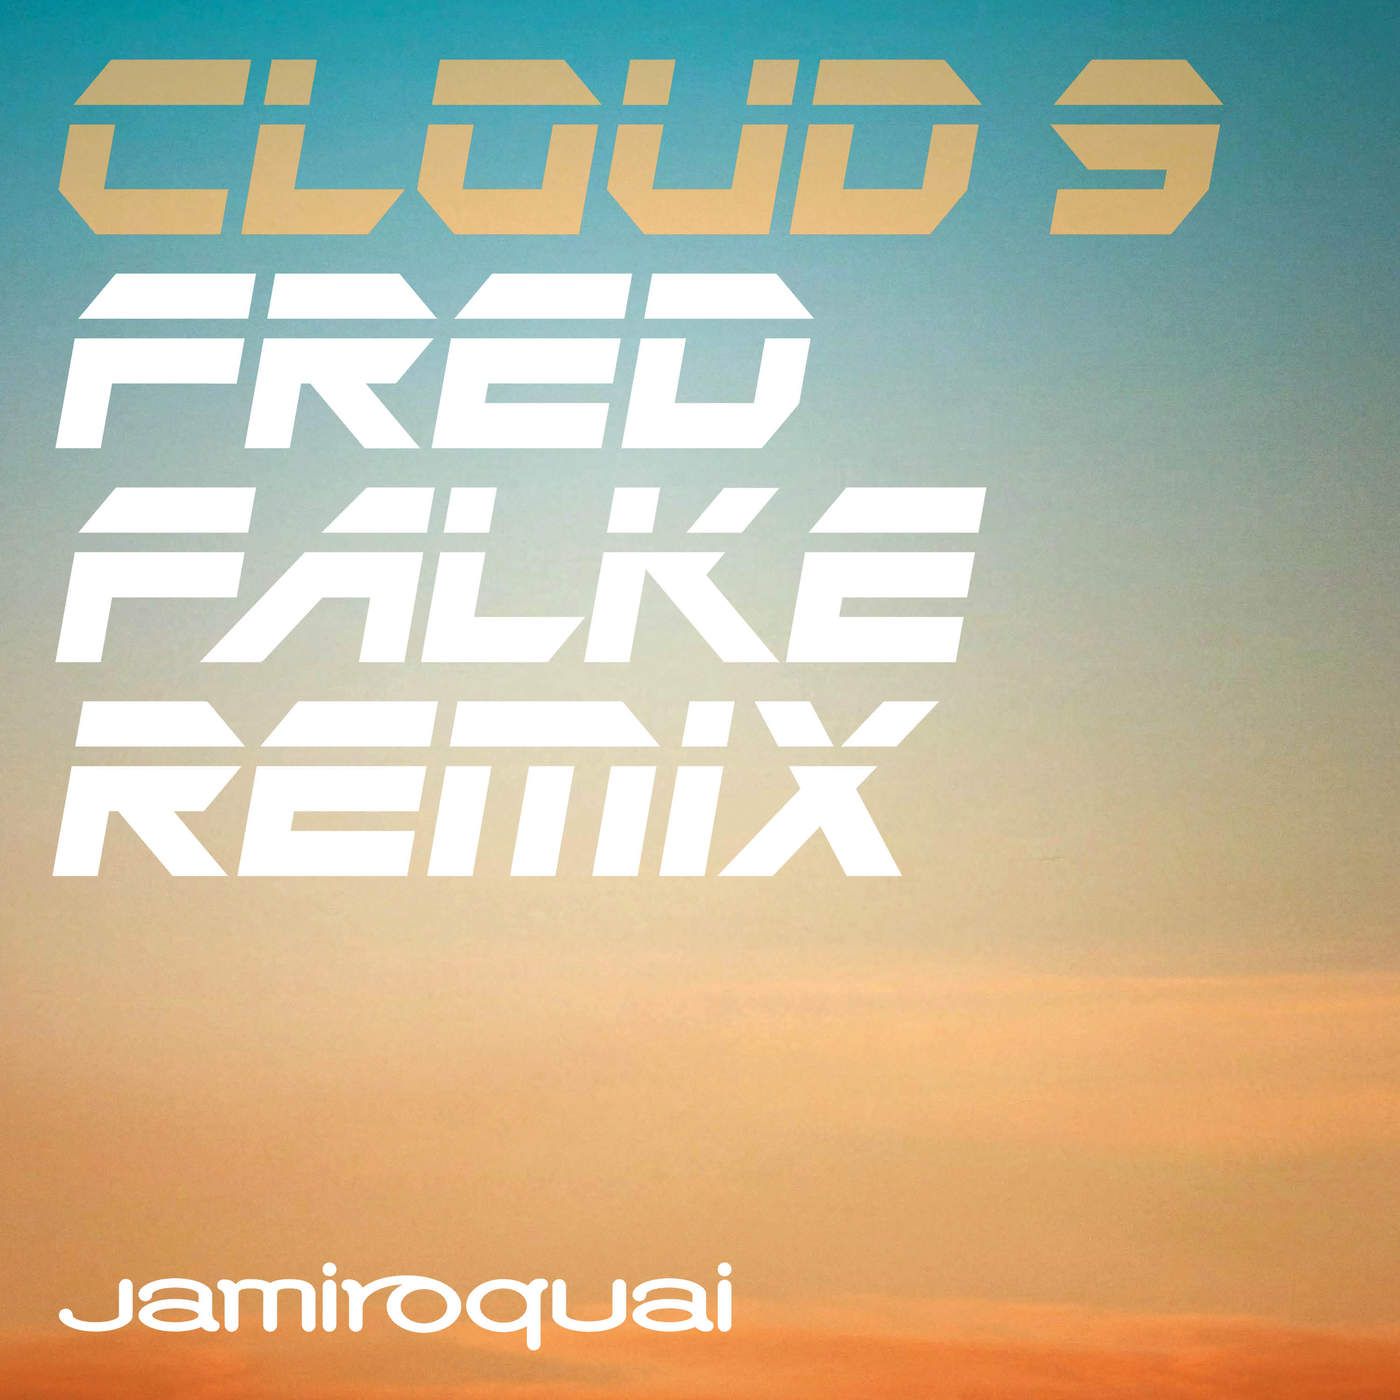 Jamiroquai - Cloud 9 (Fred Falke Remix) - Single Cover